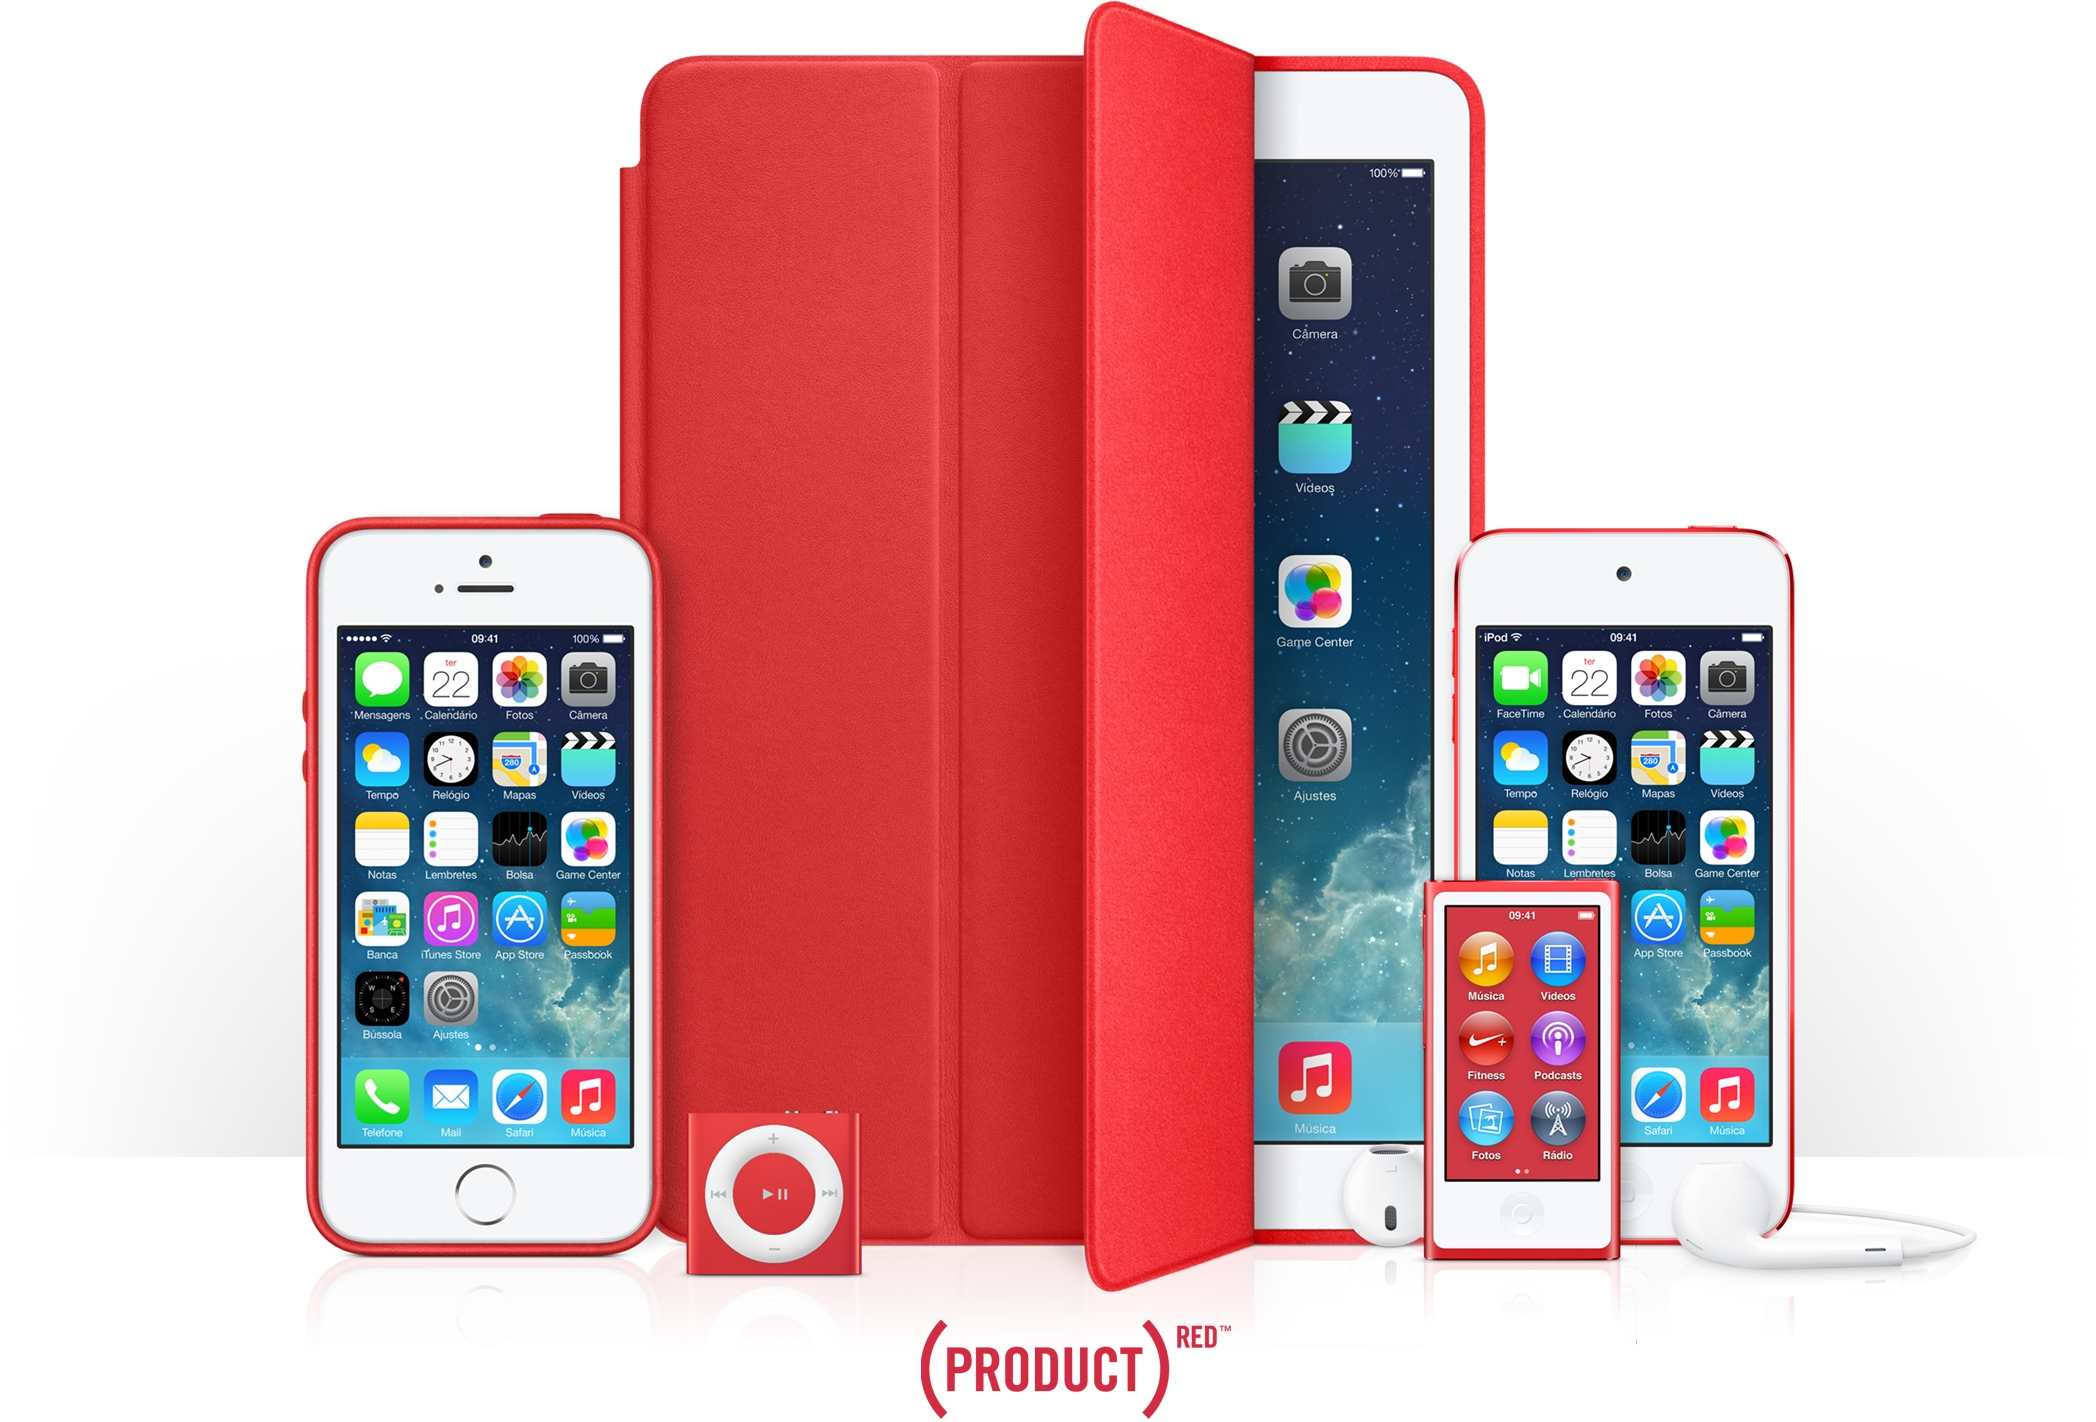 iProducts (RED)